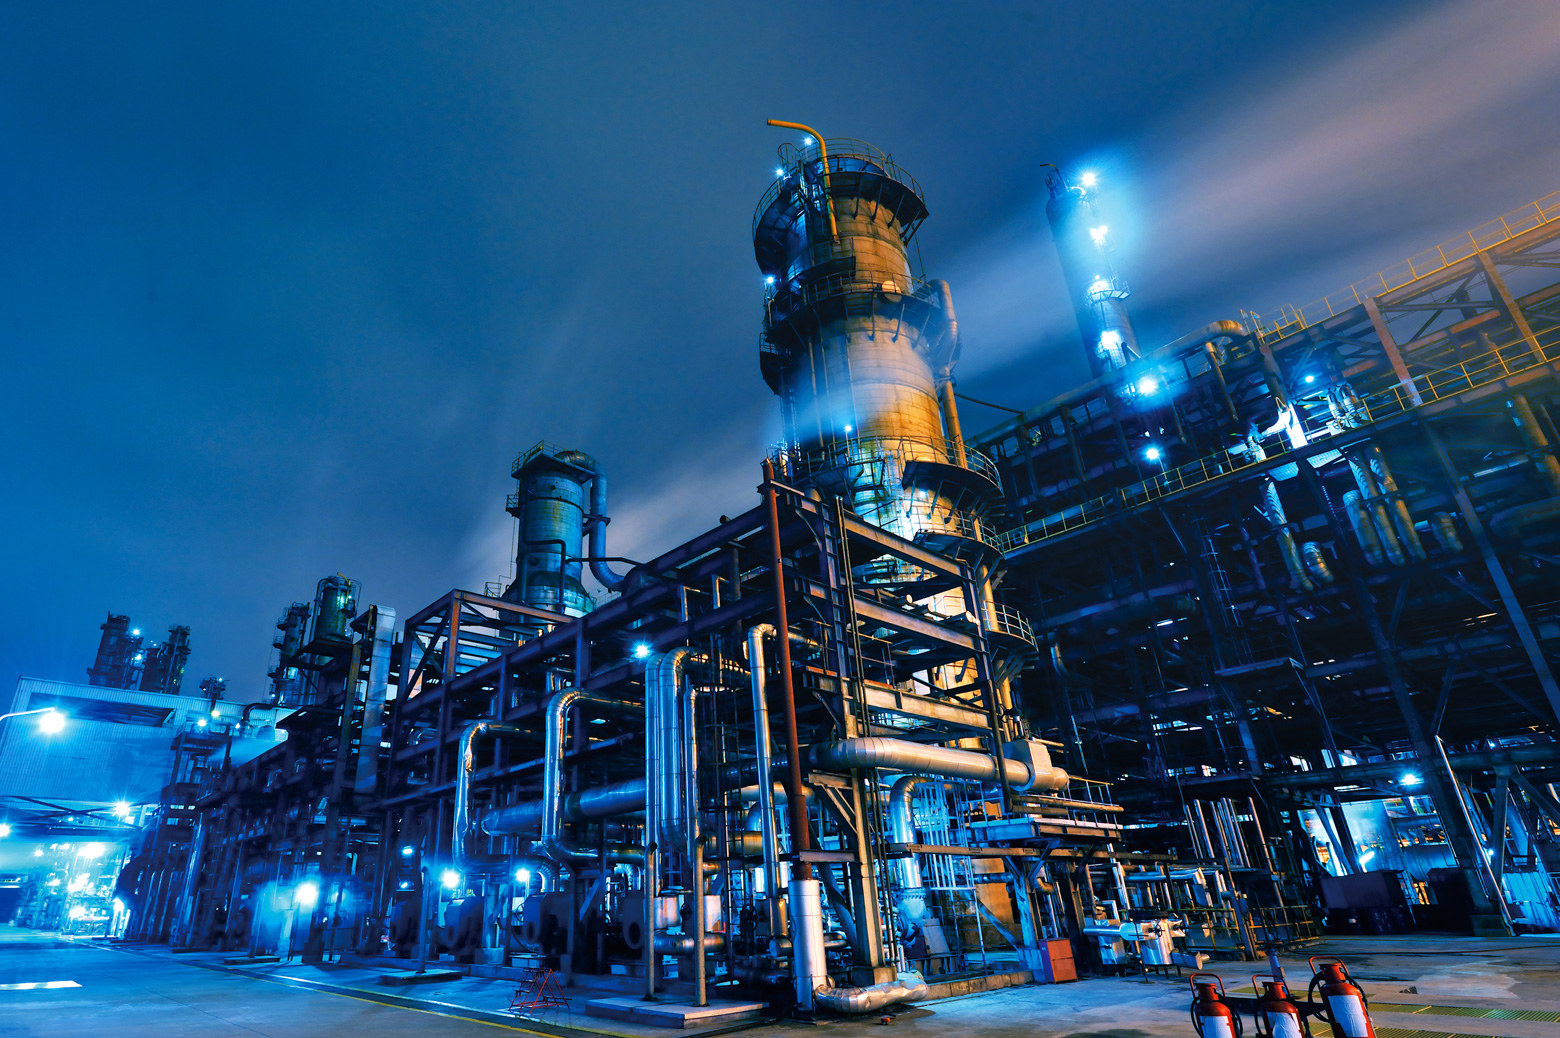 An oil refinery at night.